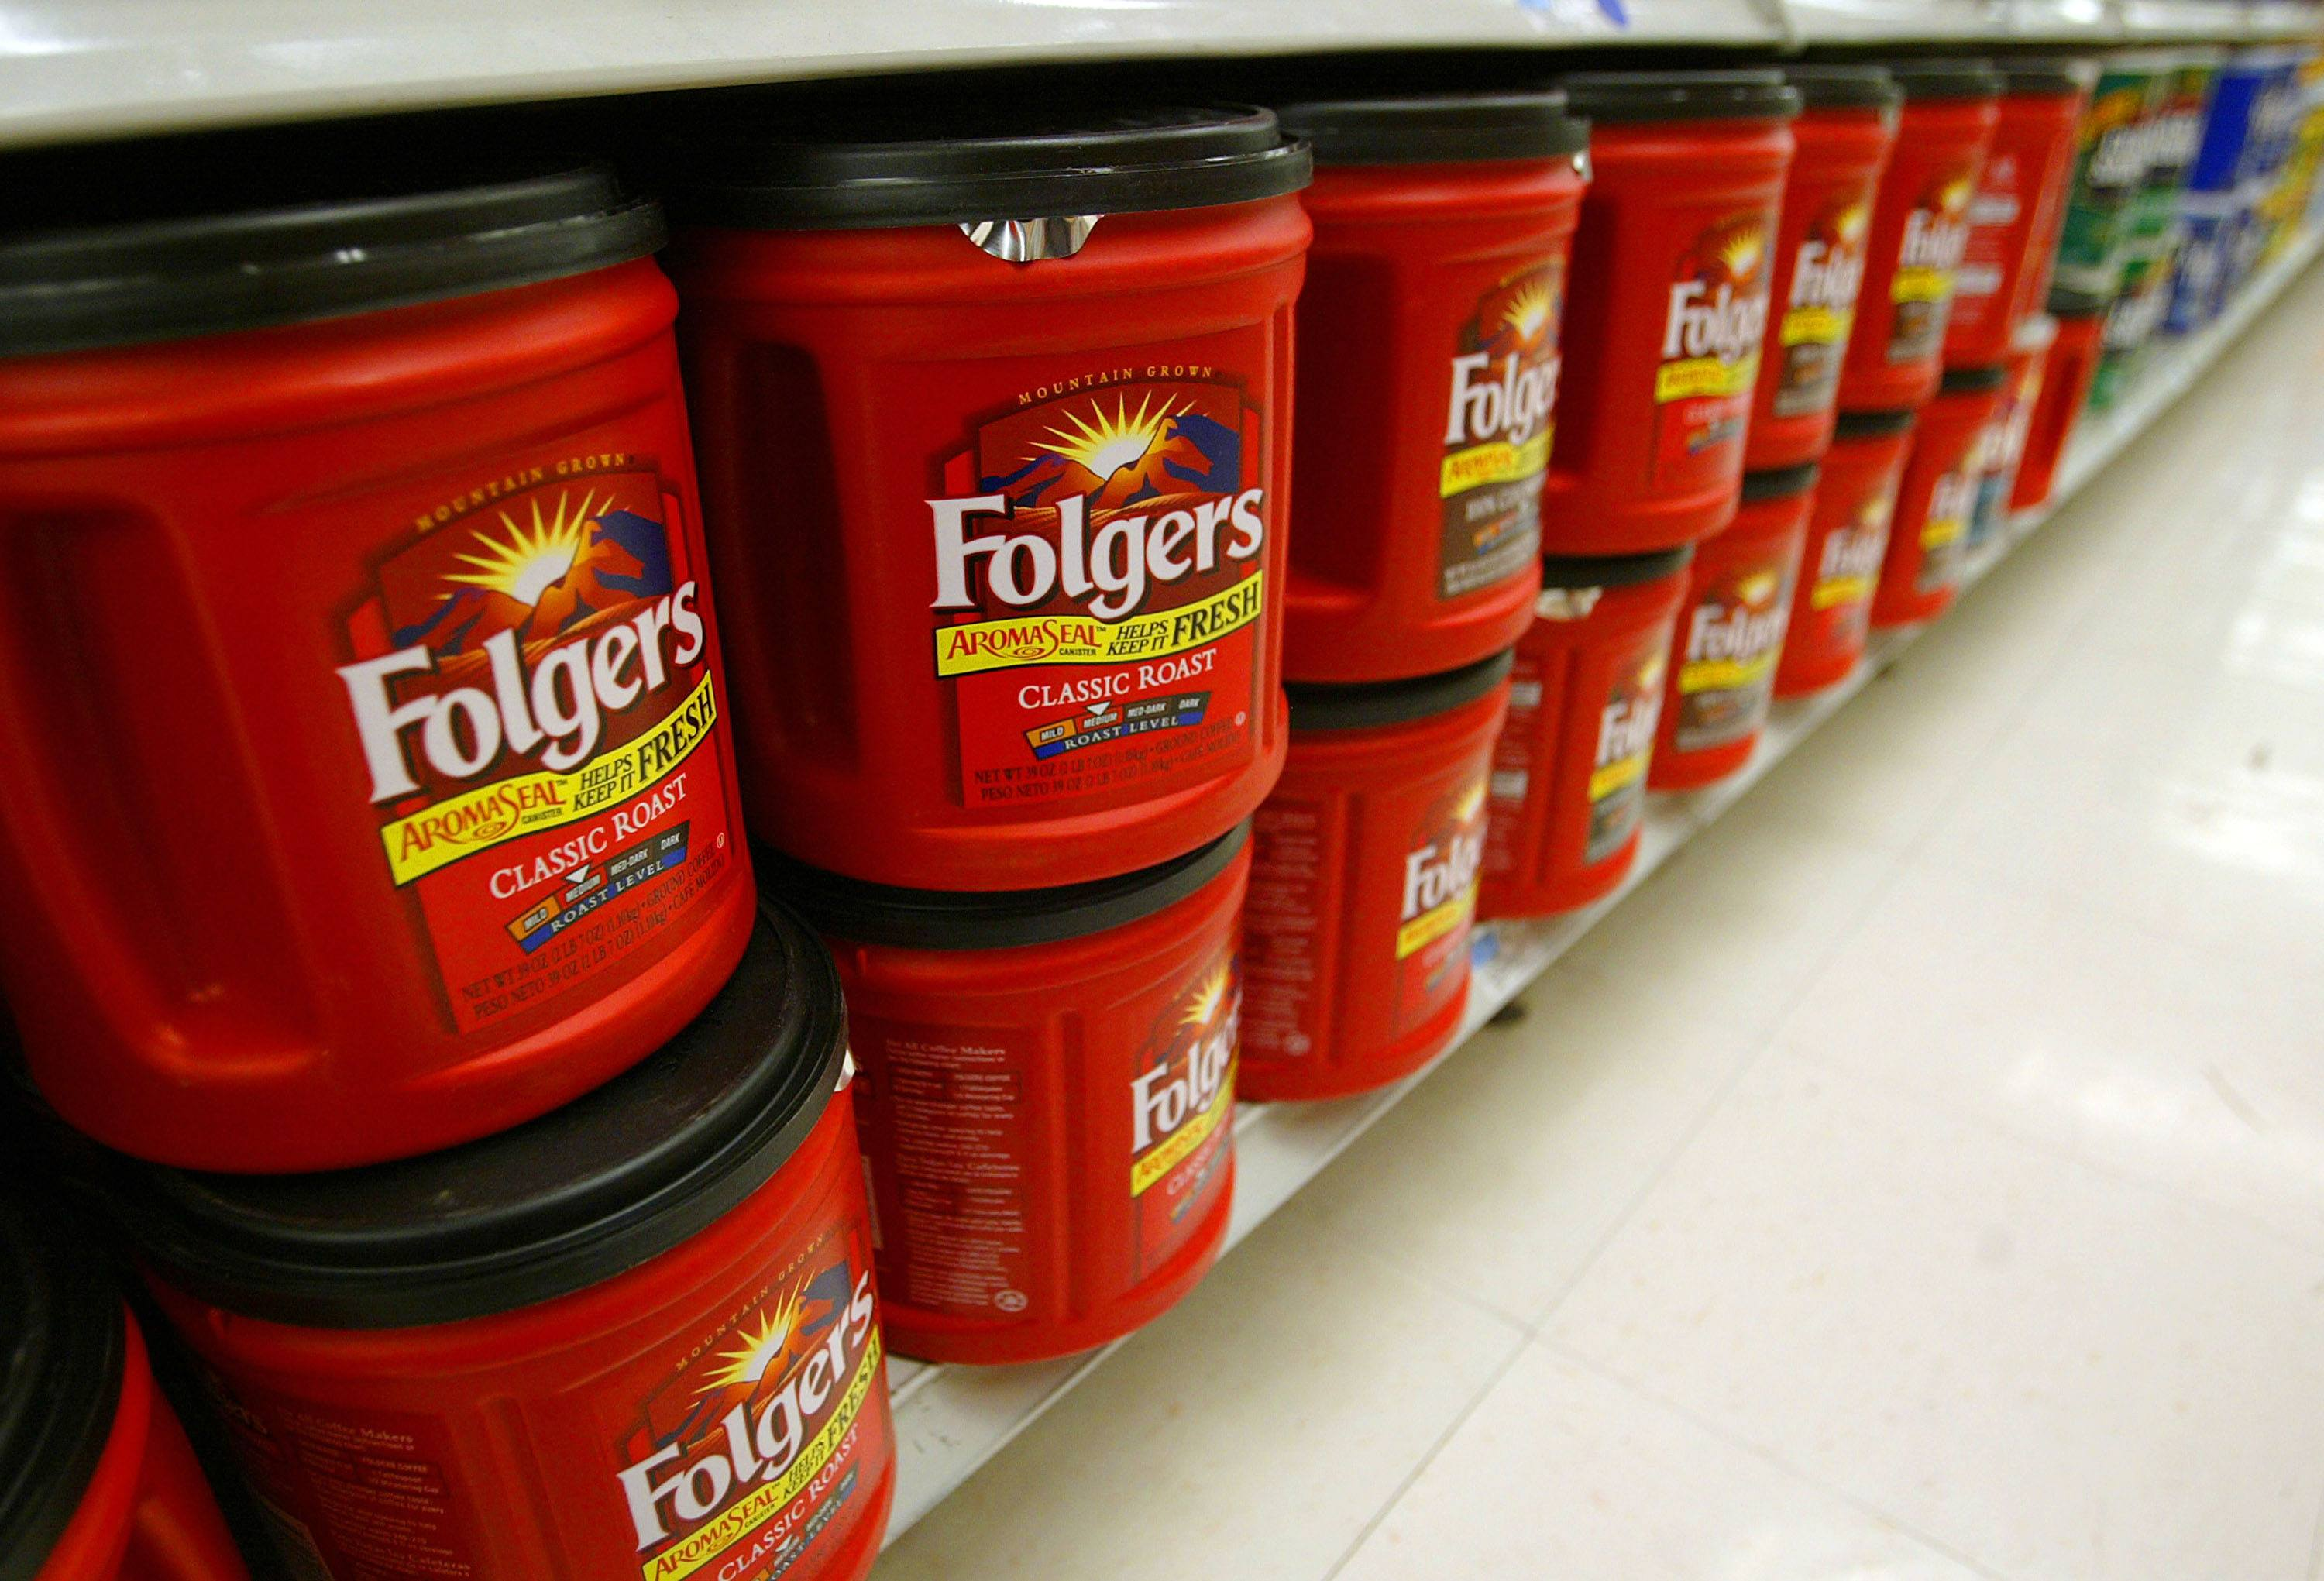 Folgers coffee, the best part of waking up, is seen on a grocery store shelf